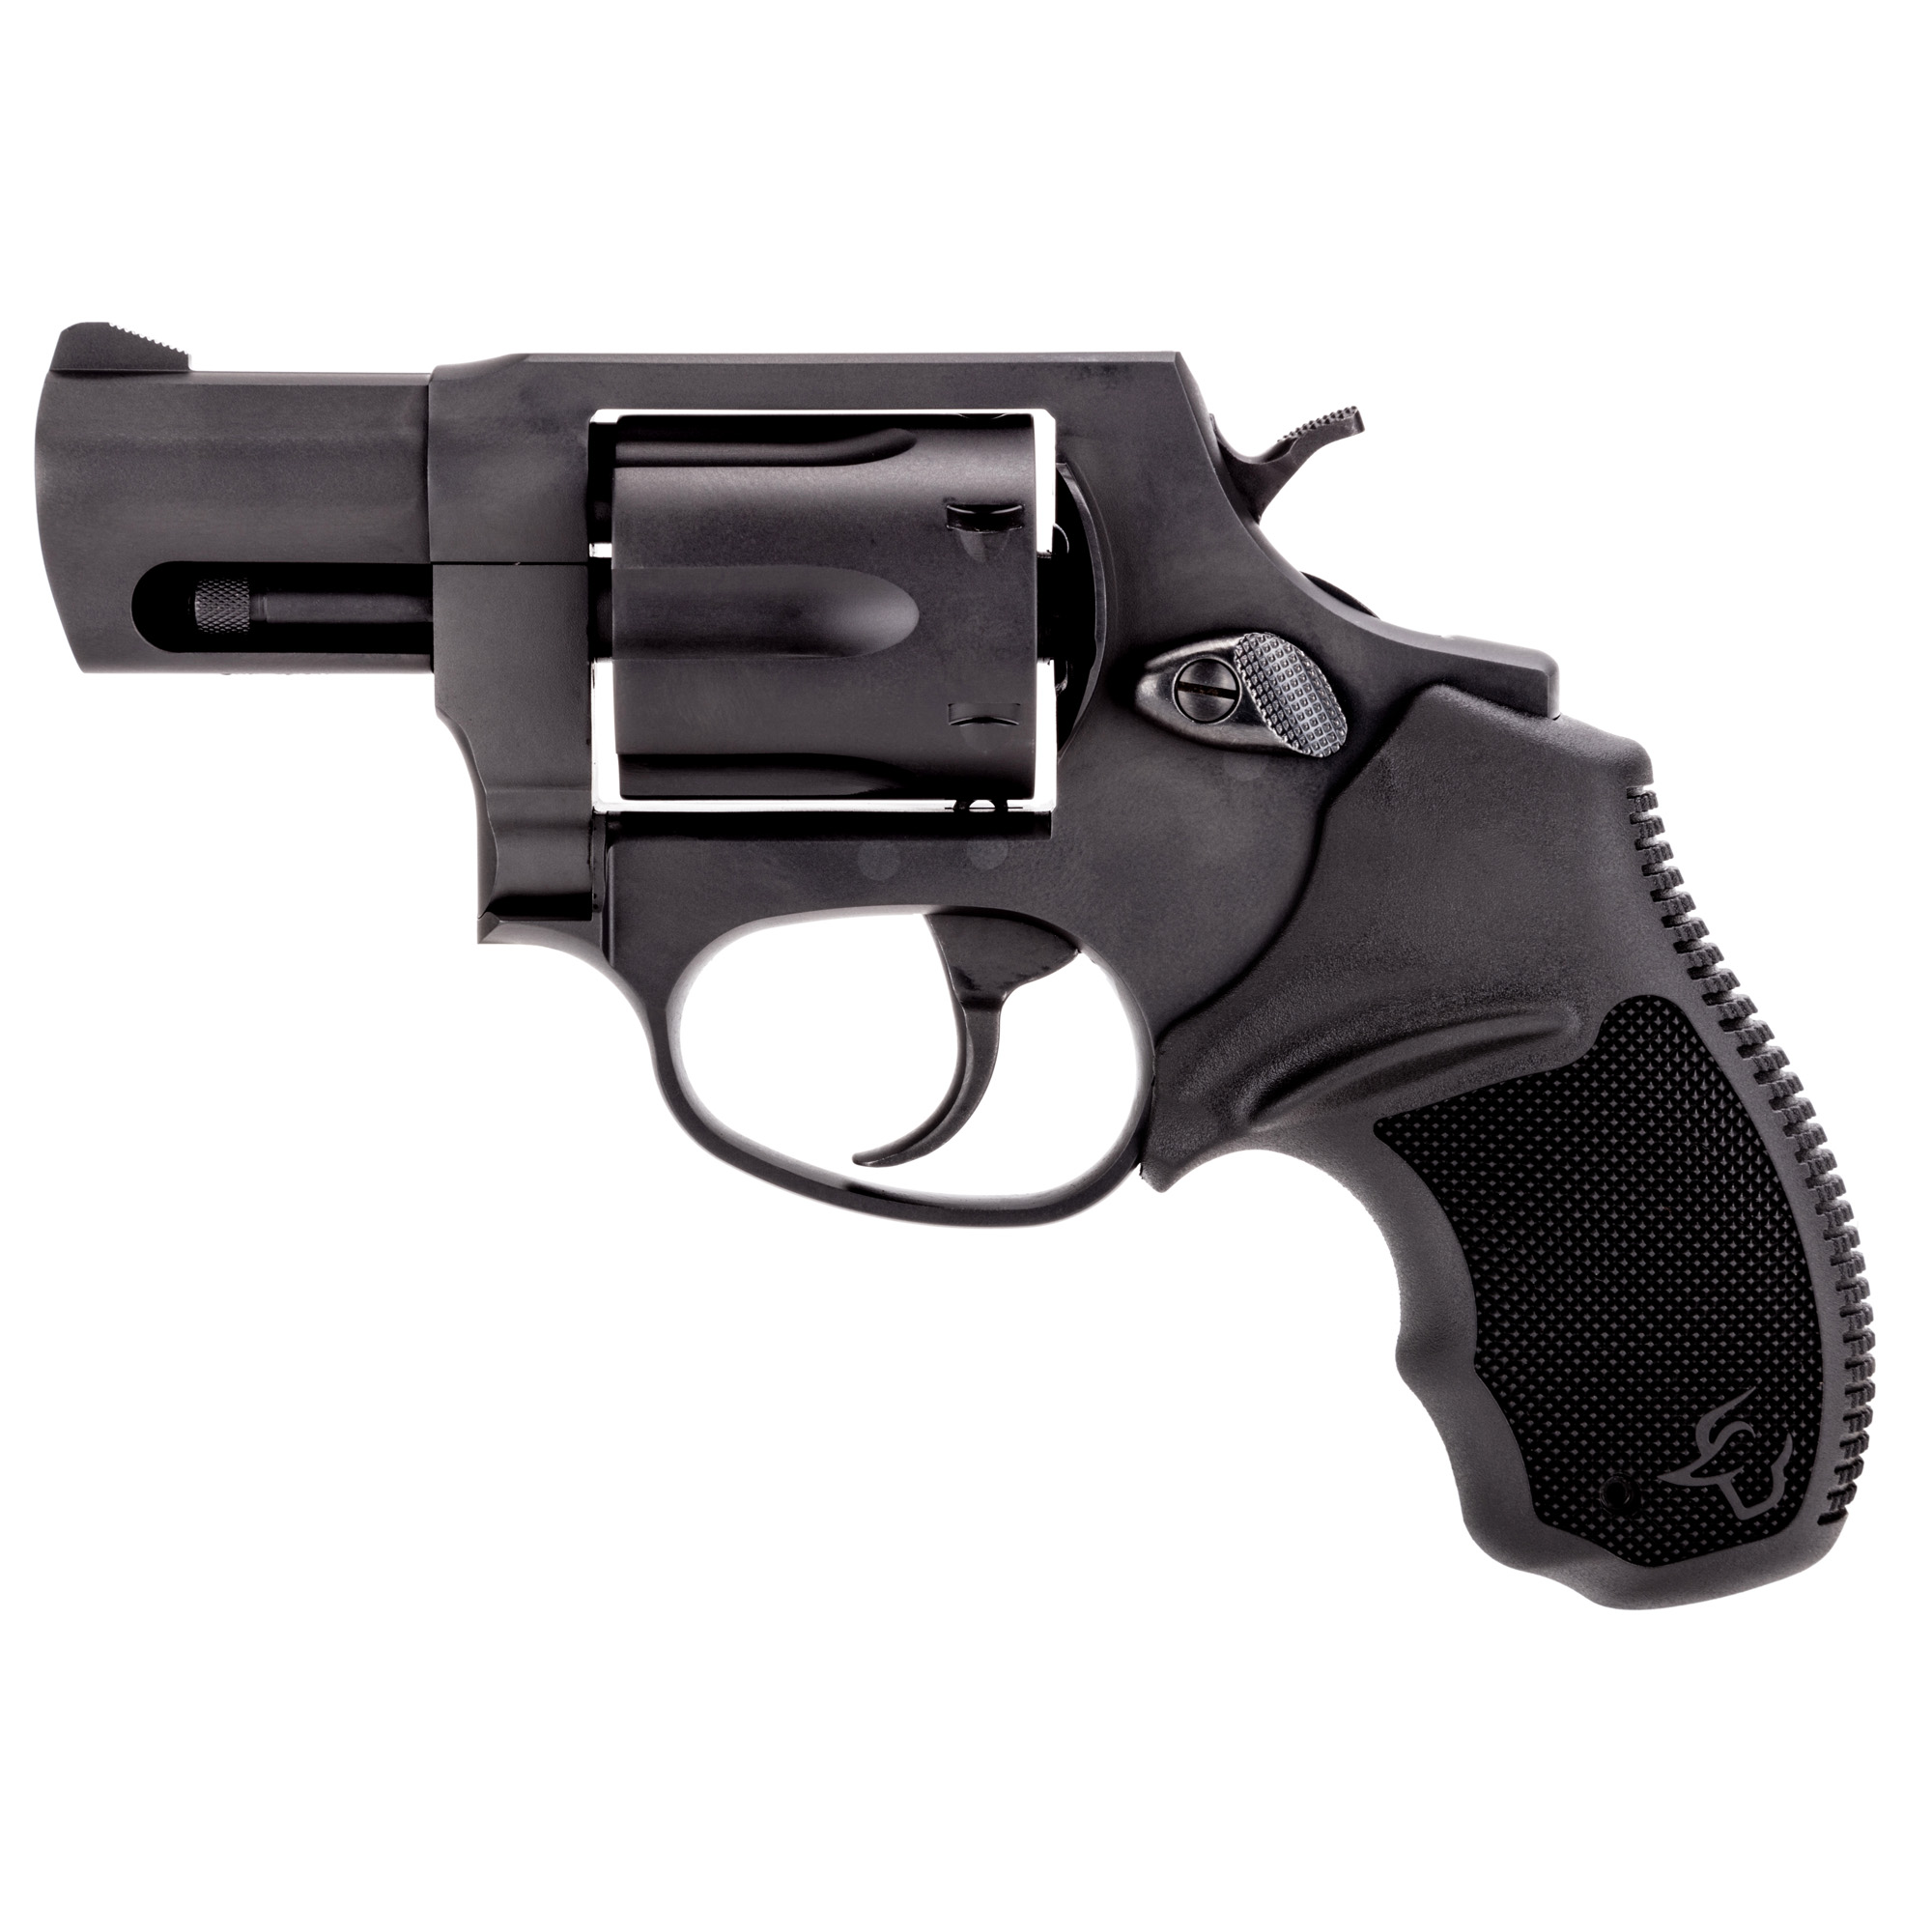 """The Taurus 856 is a reliable 6-shot"""" 38 Special revolver that features soft rubber grips-making it comfortable to shoot at the range while the double/single action increases speed and accuracy for follow-up shots."""